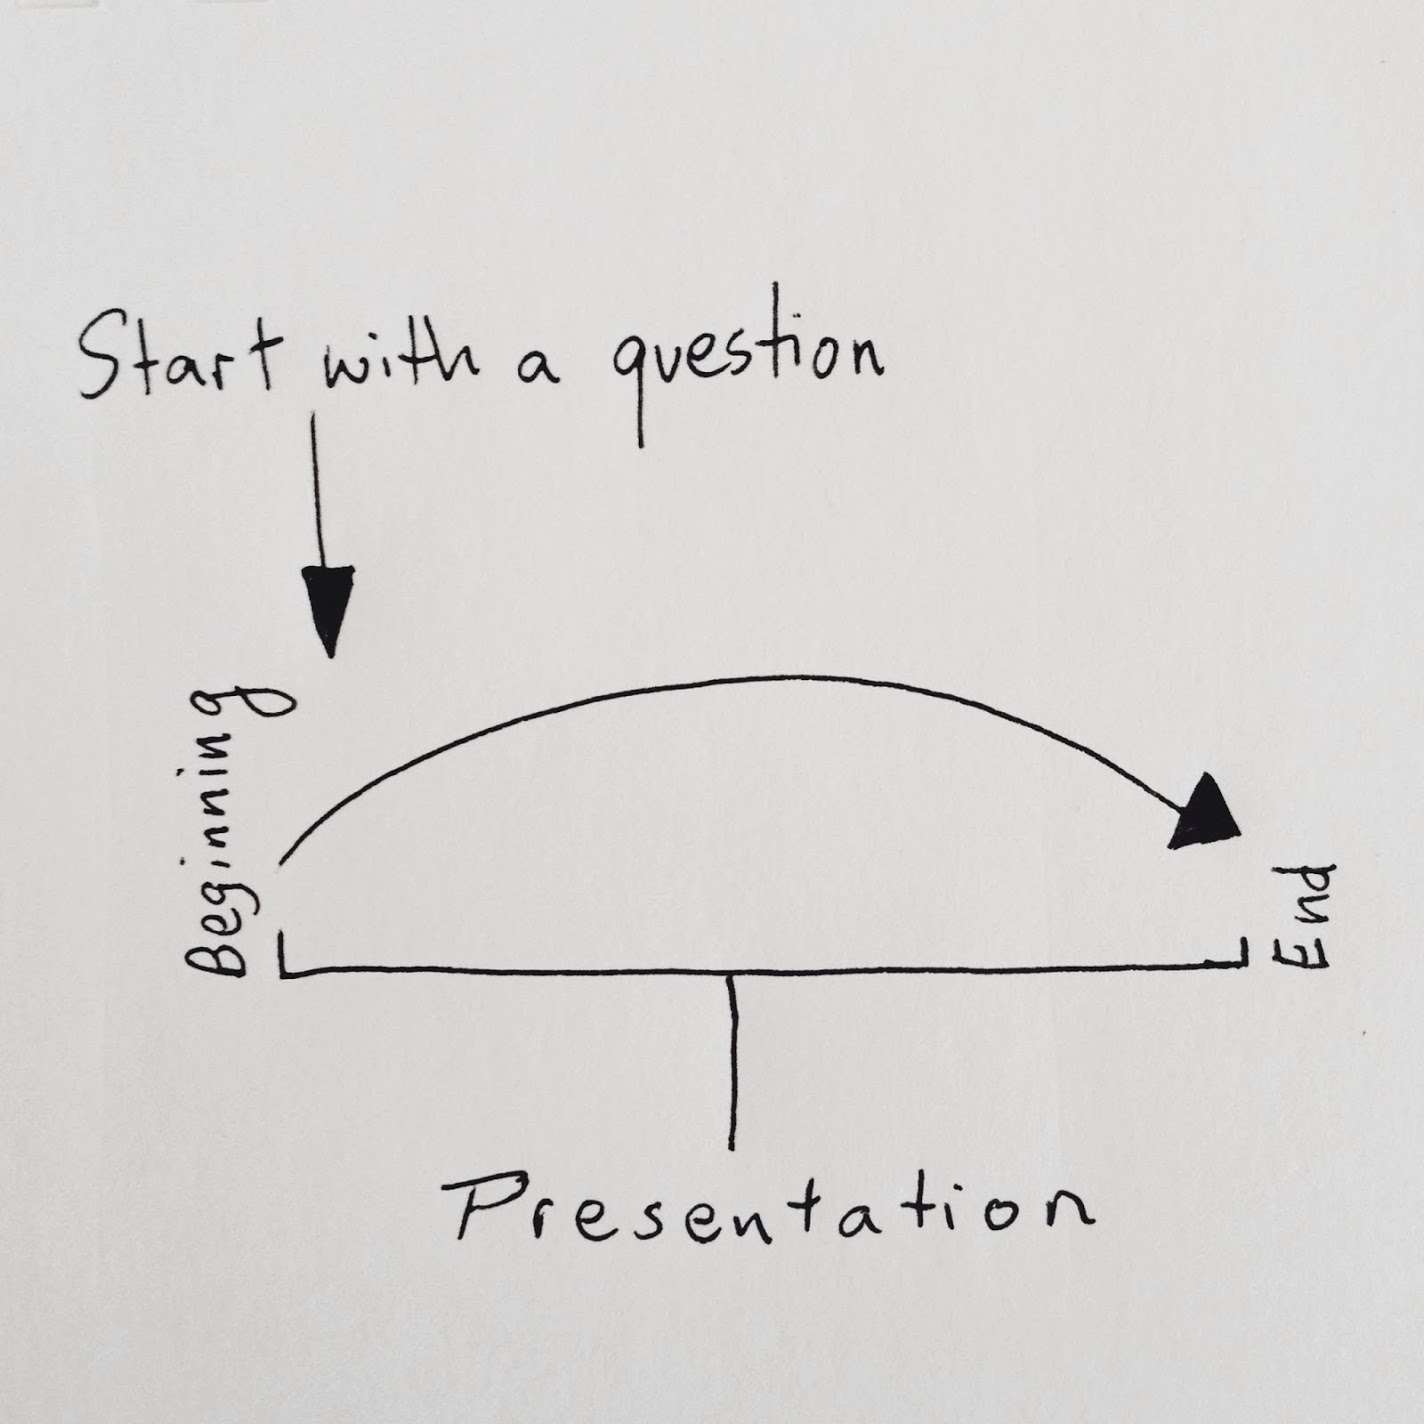 start with a question